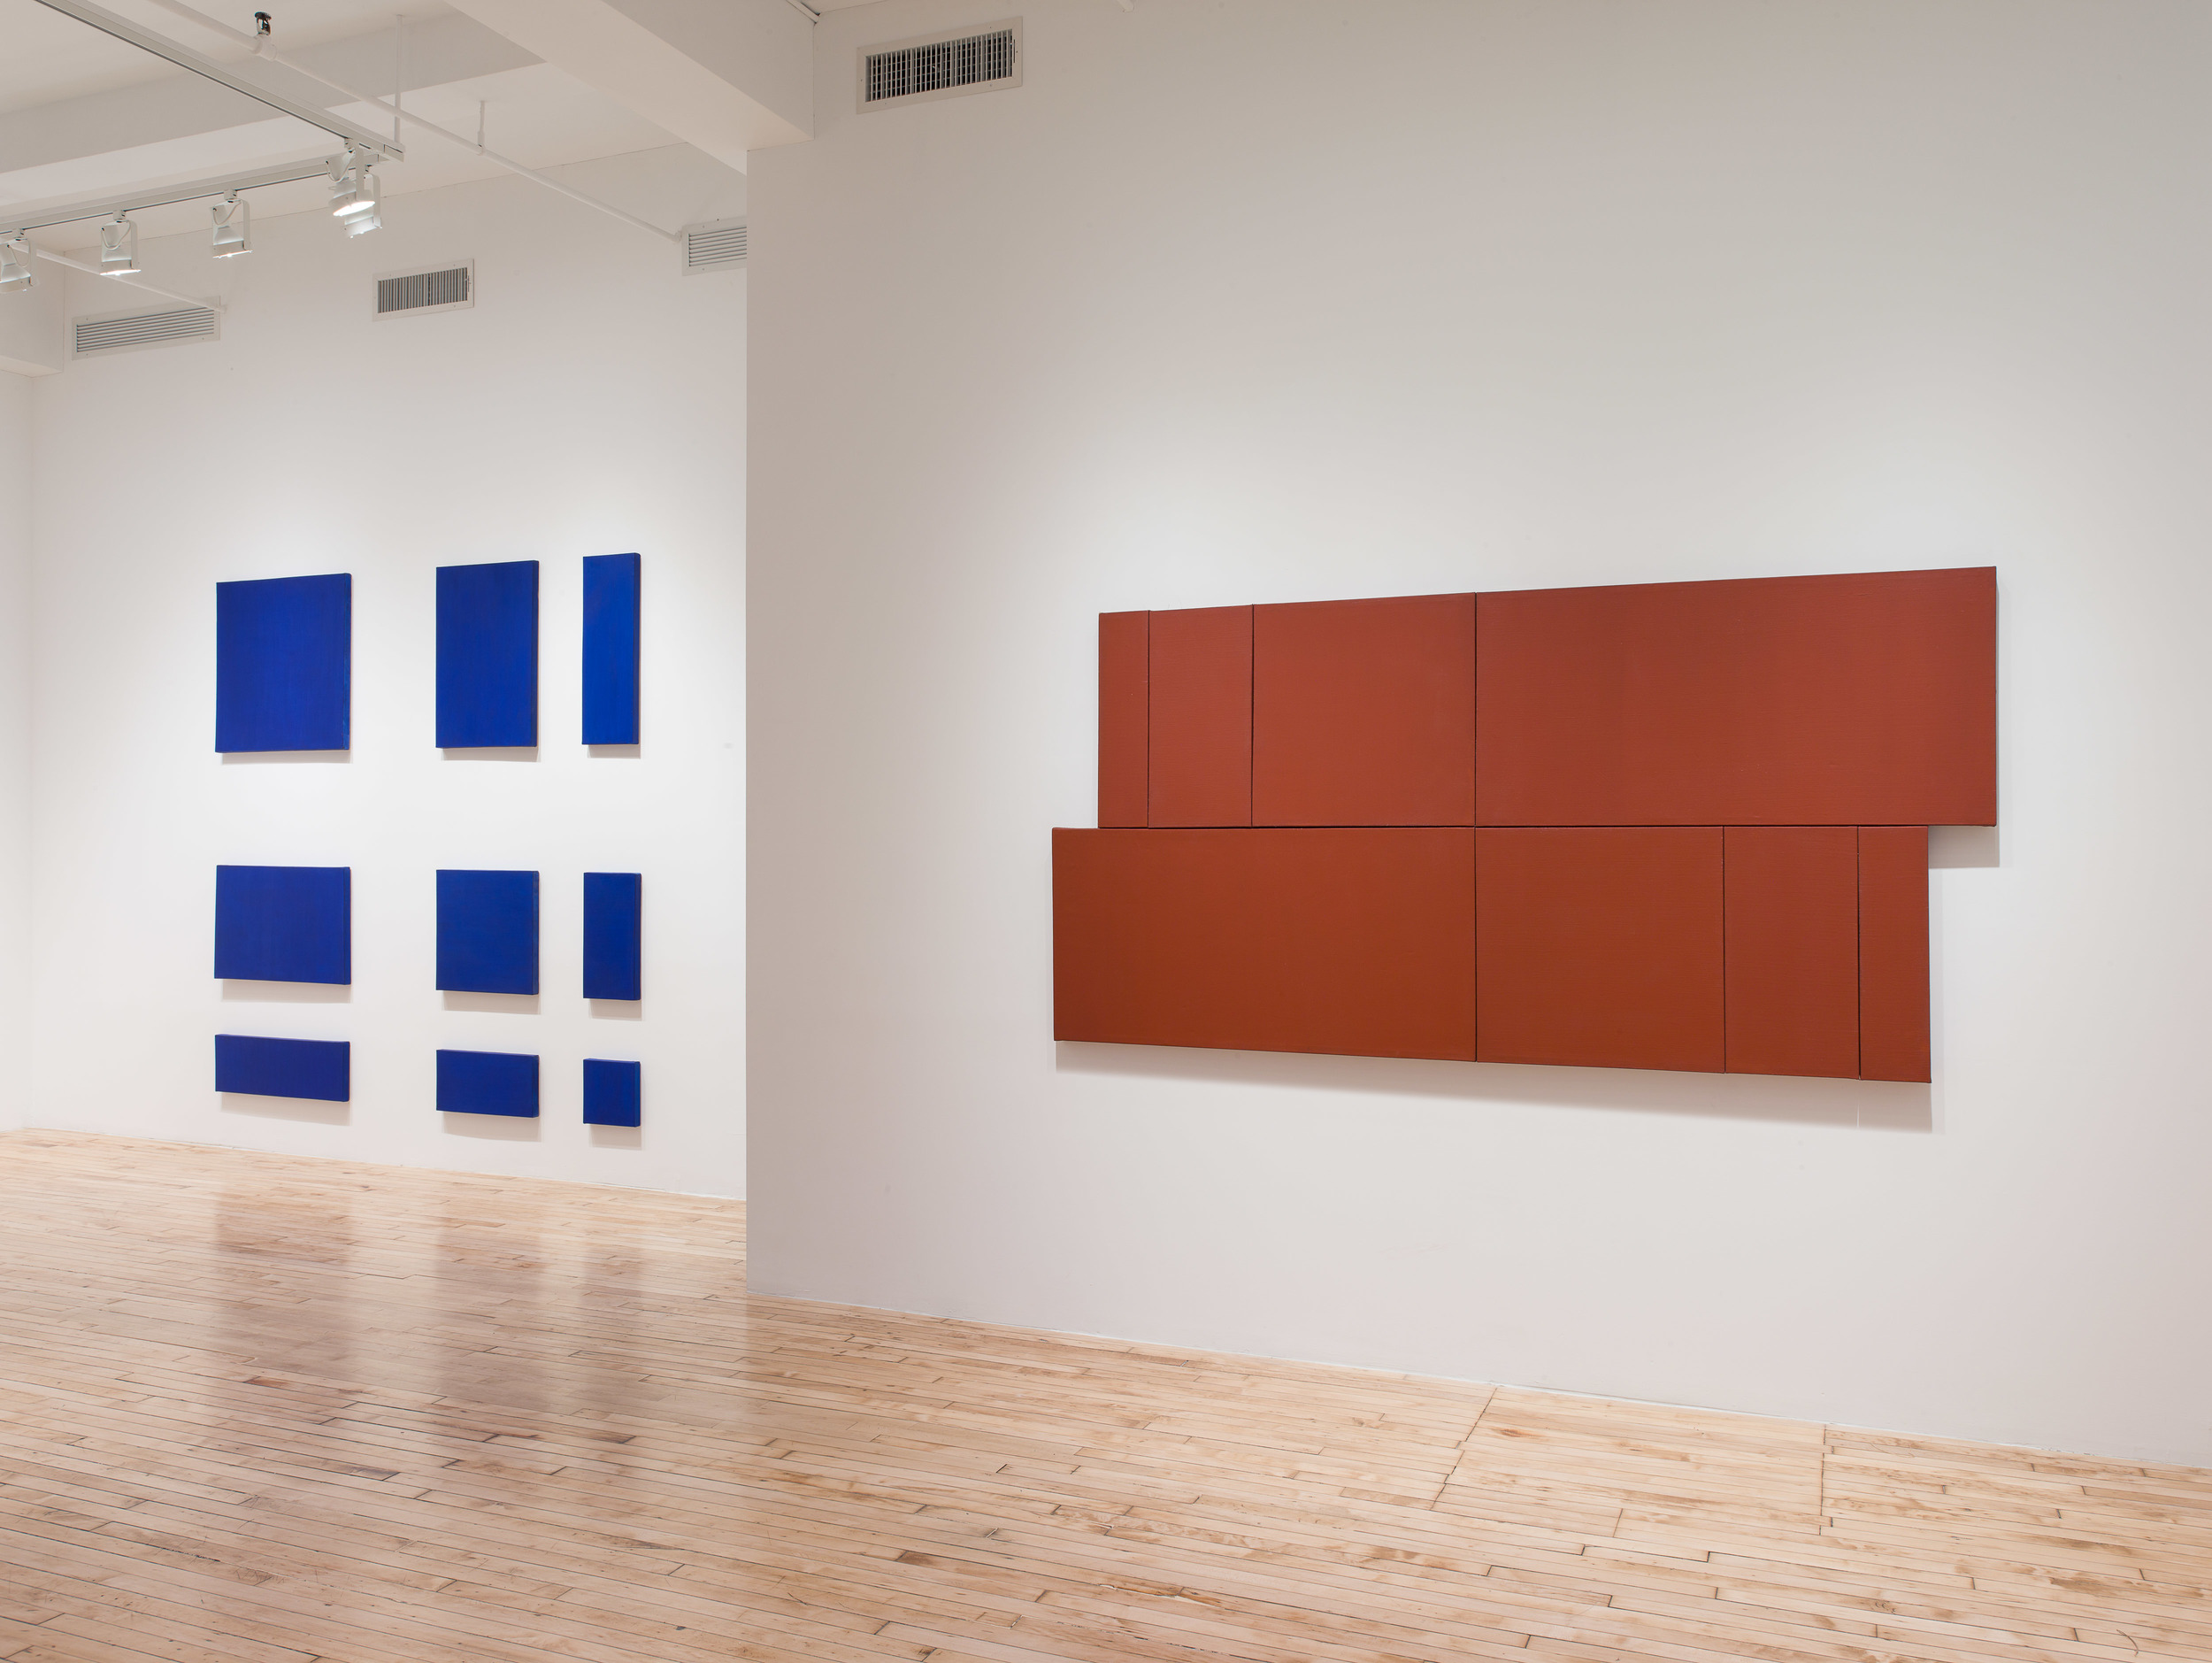 Grid of blue rectangles on the far wall of the gallery.  Long rust colored canvases hang on the wall in the foreground.